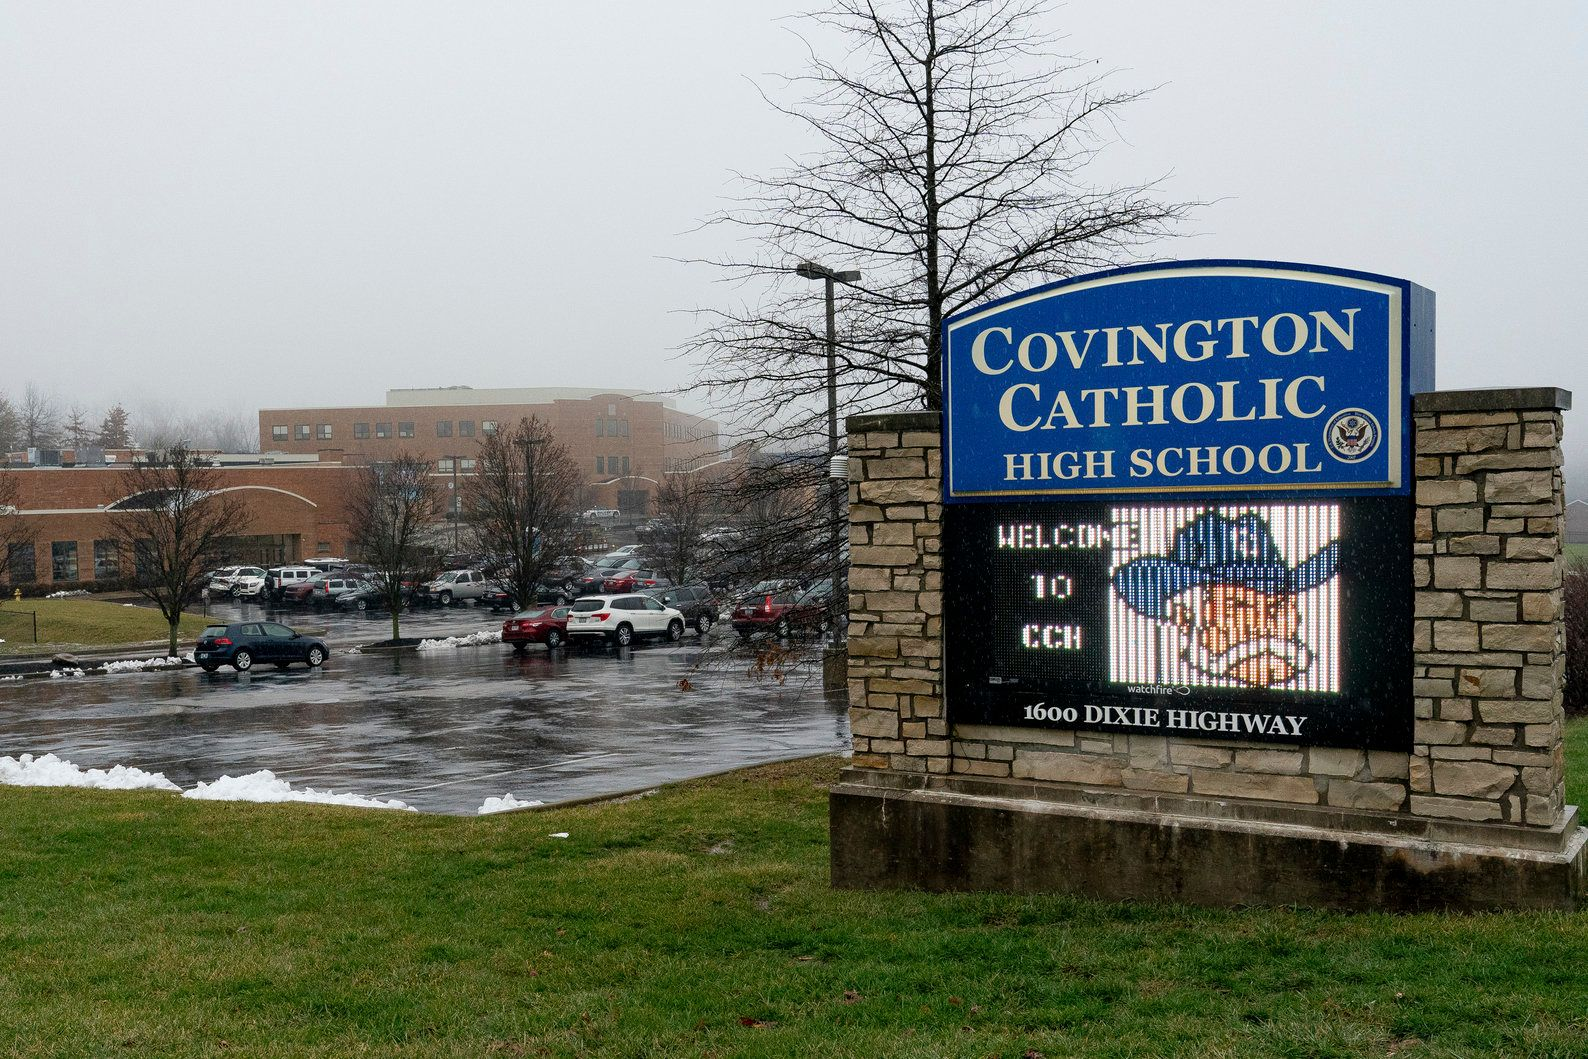 Investigation Initiated By Diocese Claims To 'Exonerate' Covington Catholic School